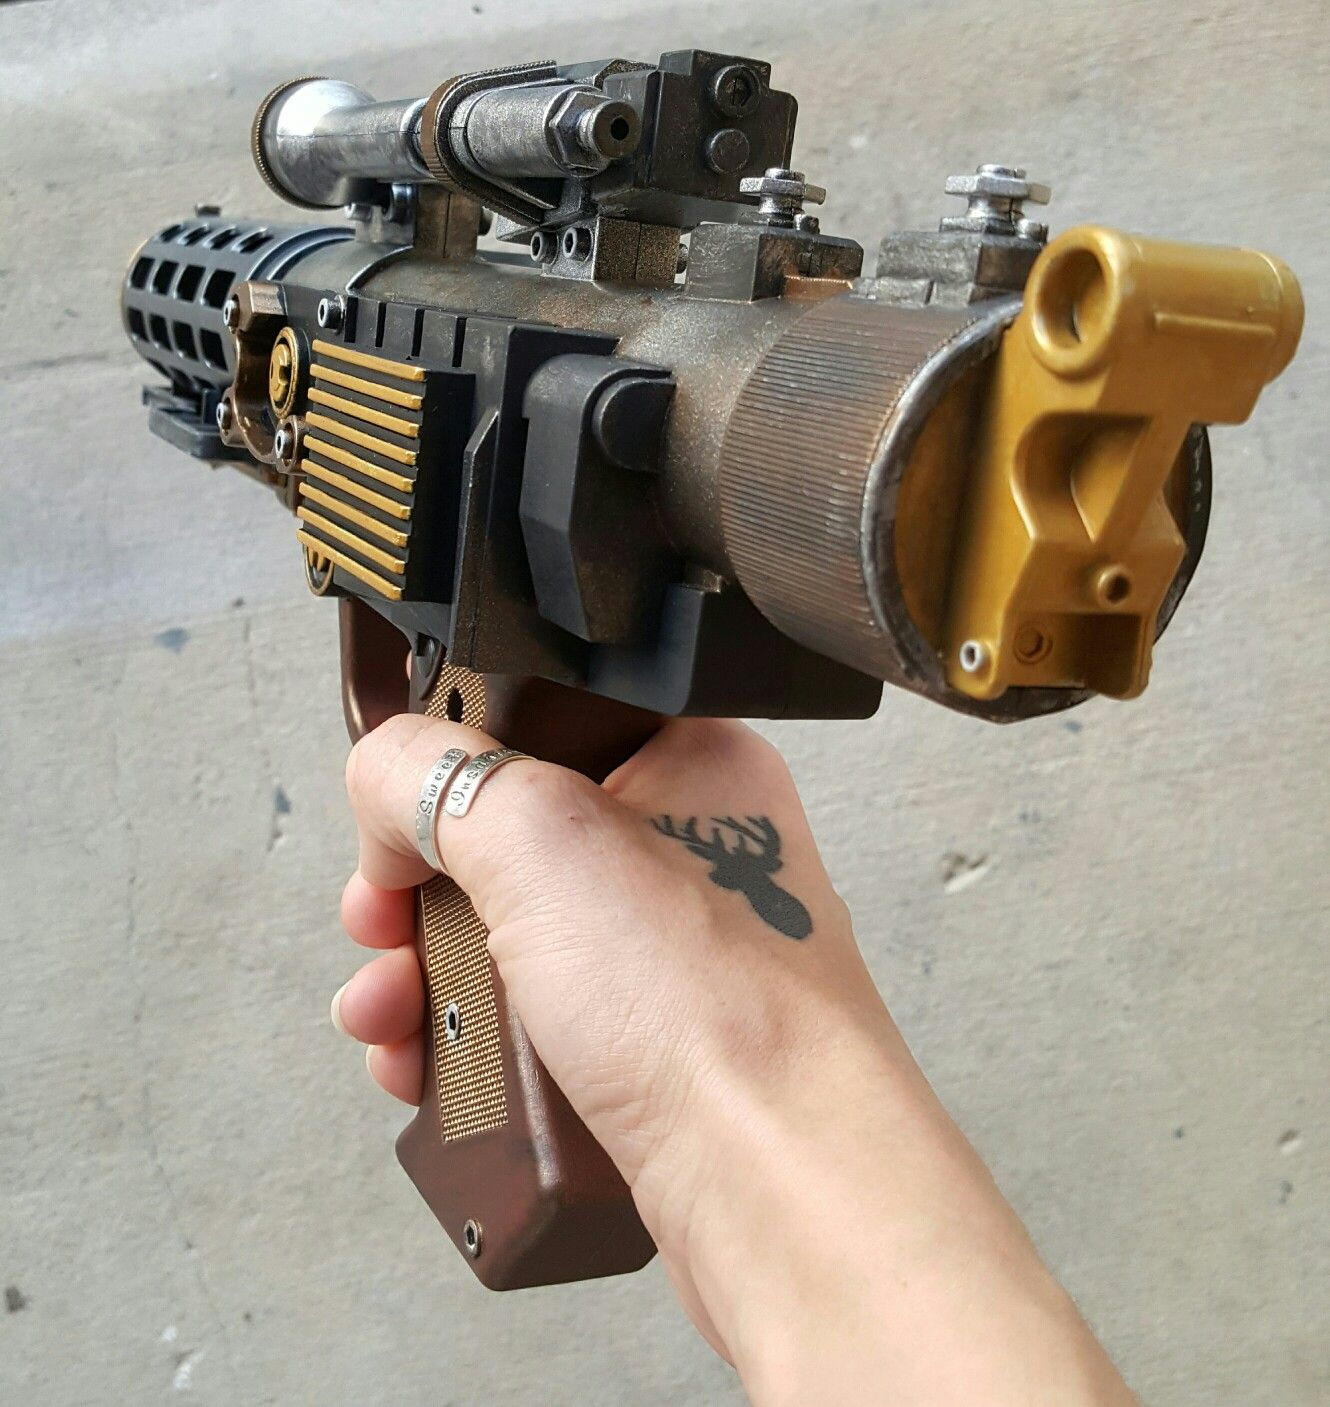 just completed this awesome Steampunk laser rifle! on sale